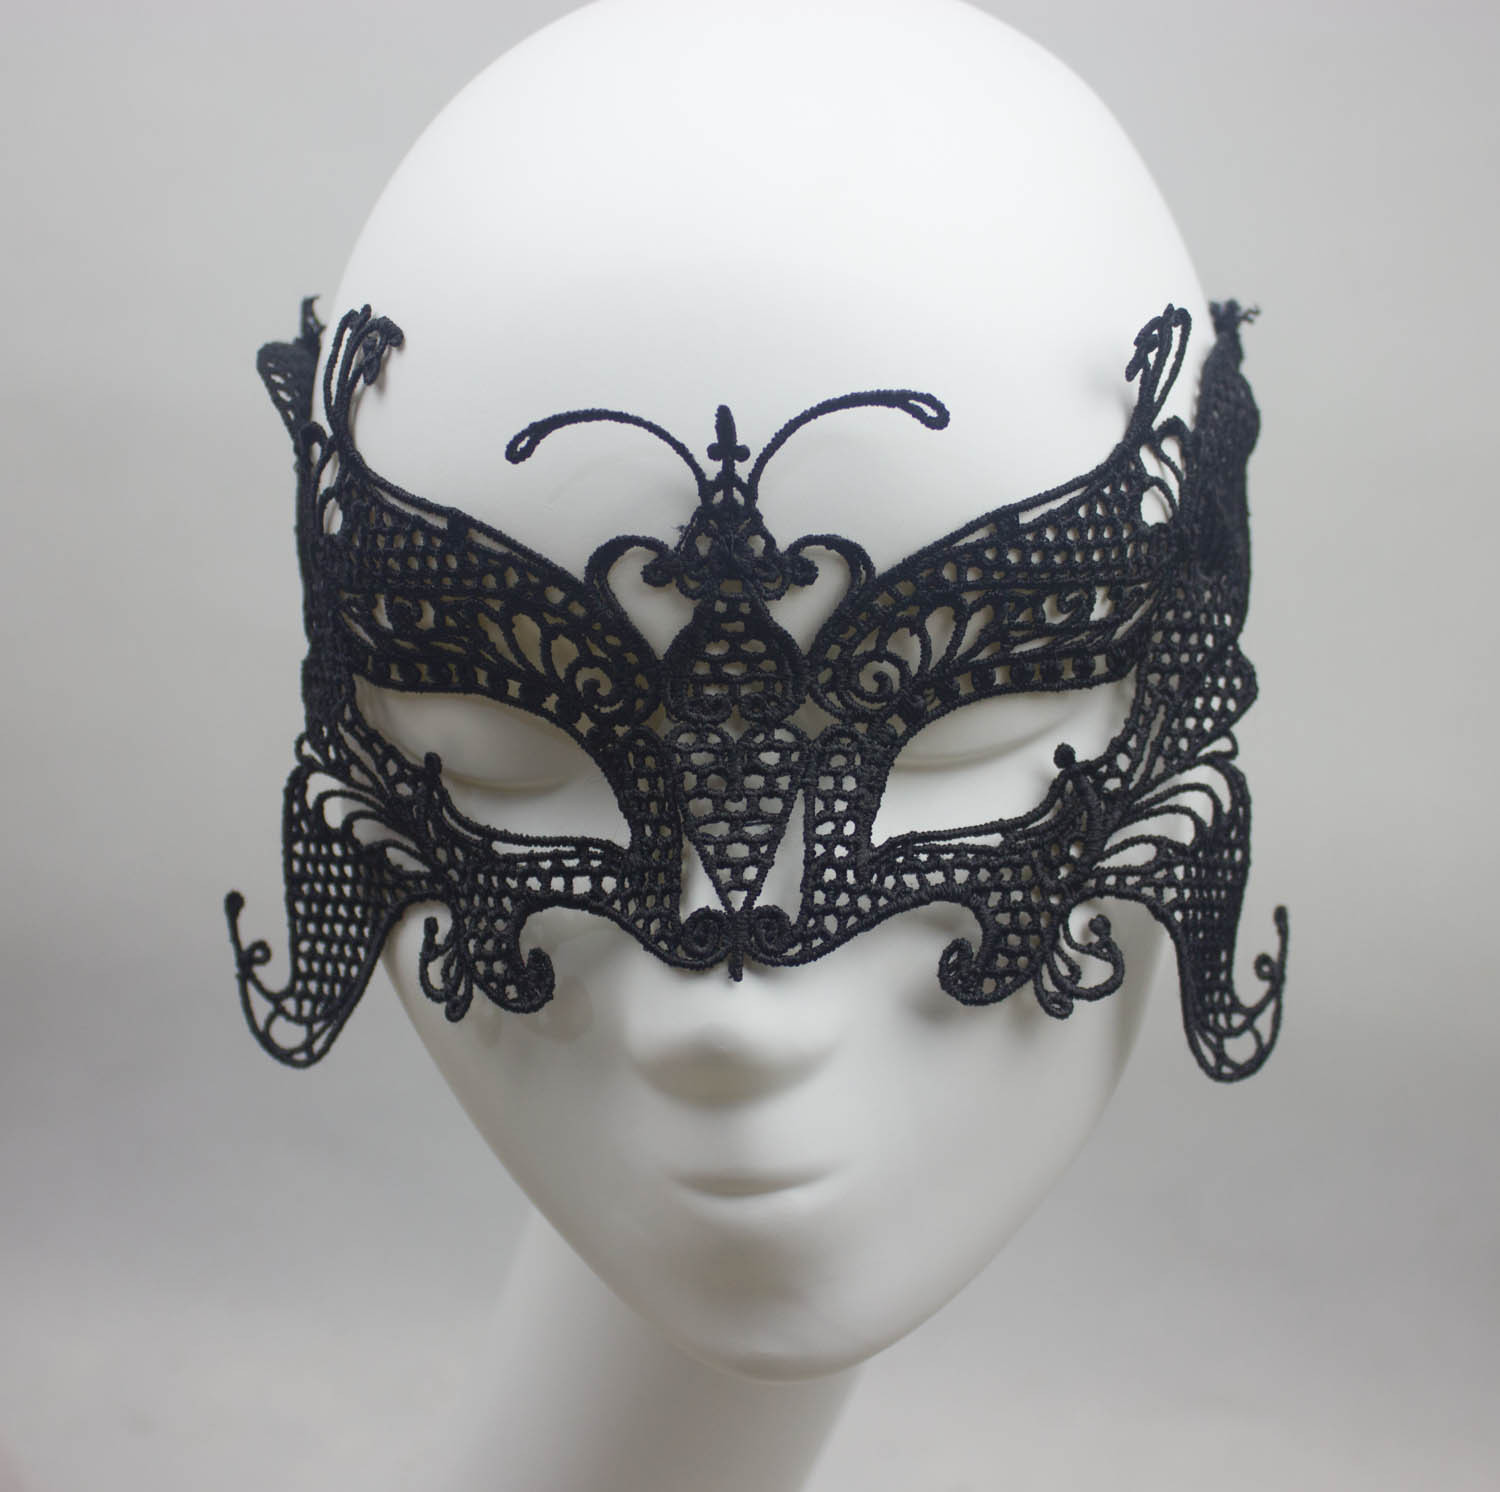 Lace eye mask #5